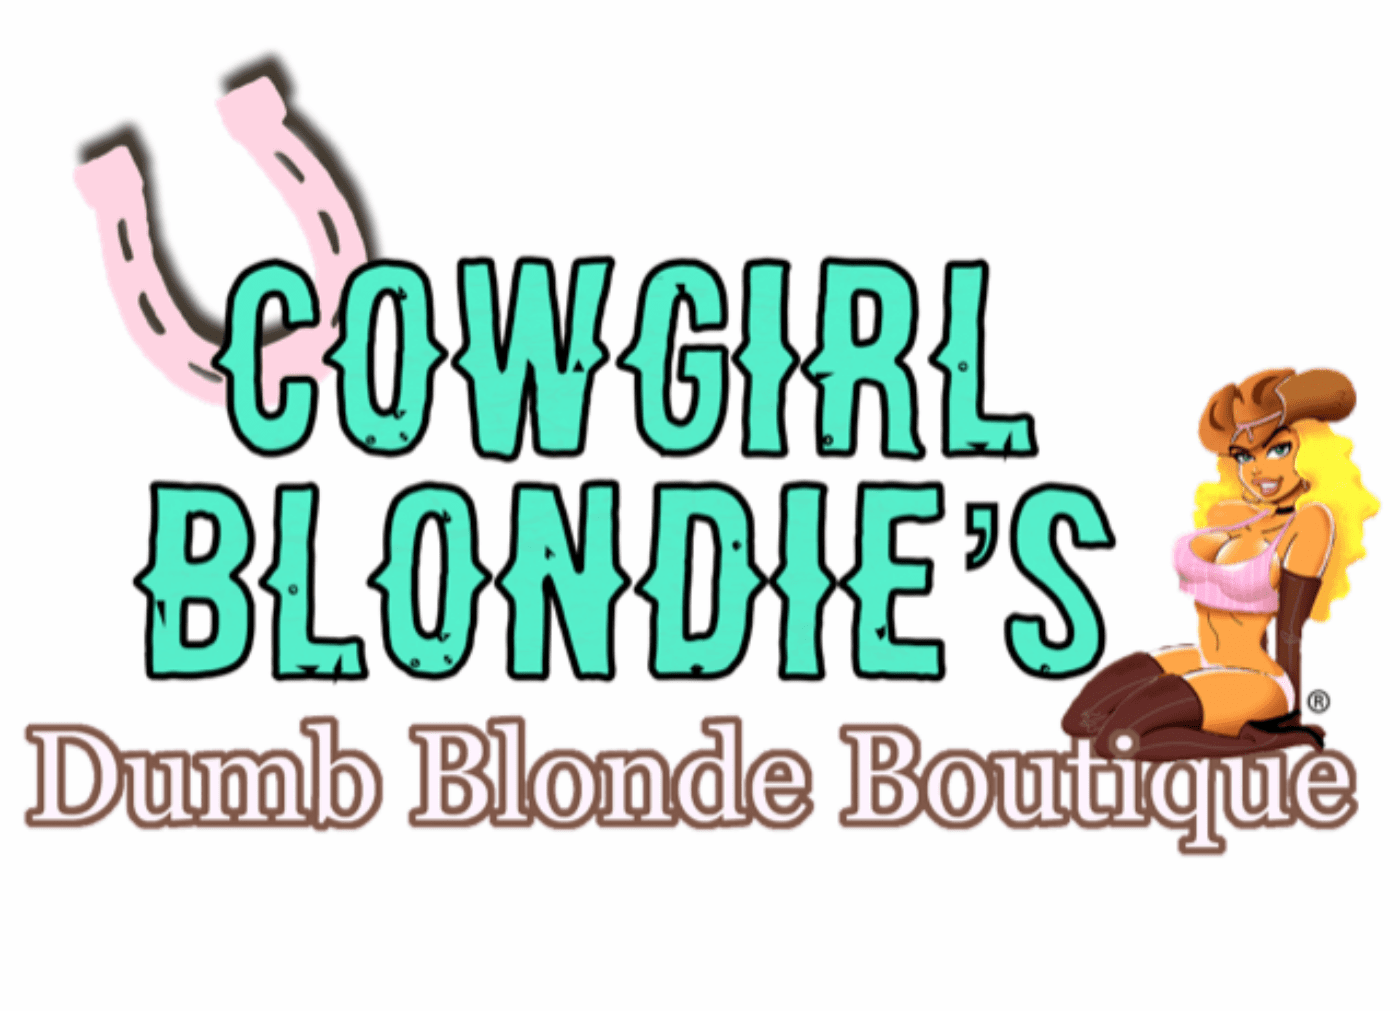 Cowgirl Blondie's Dumb Blonde Western Boutique